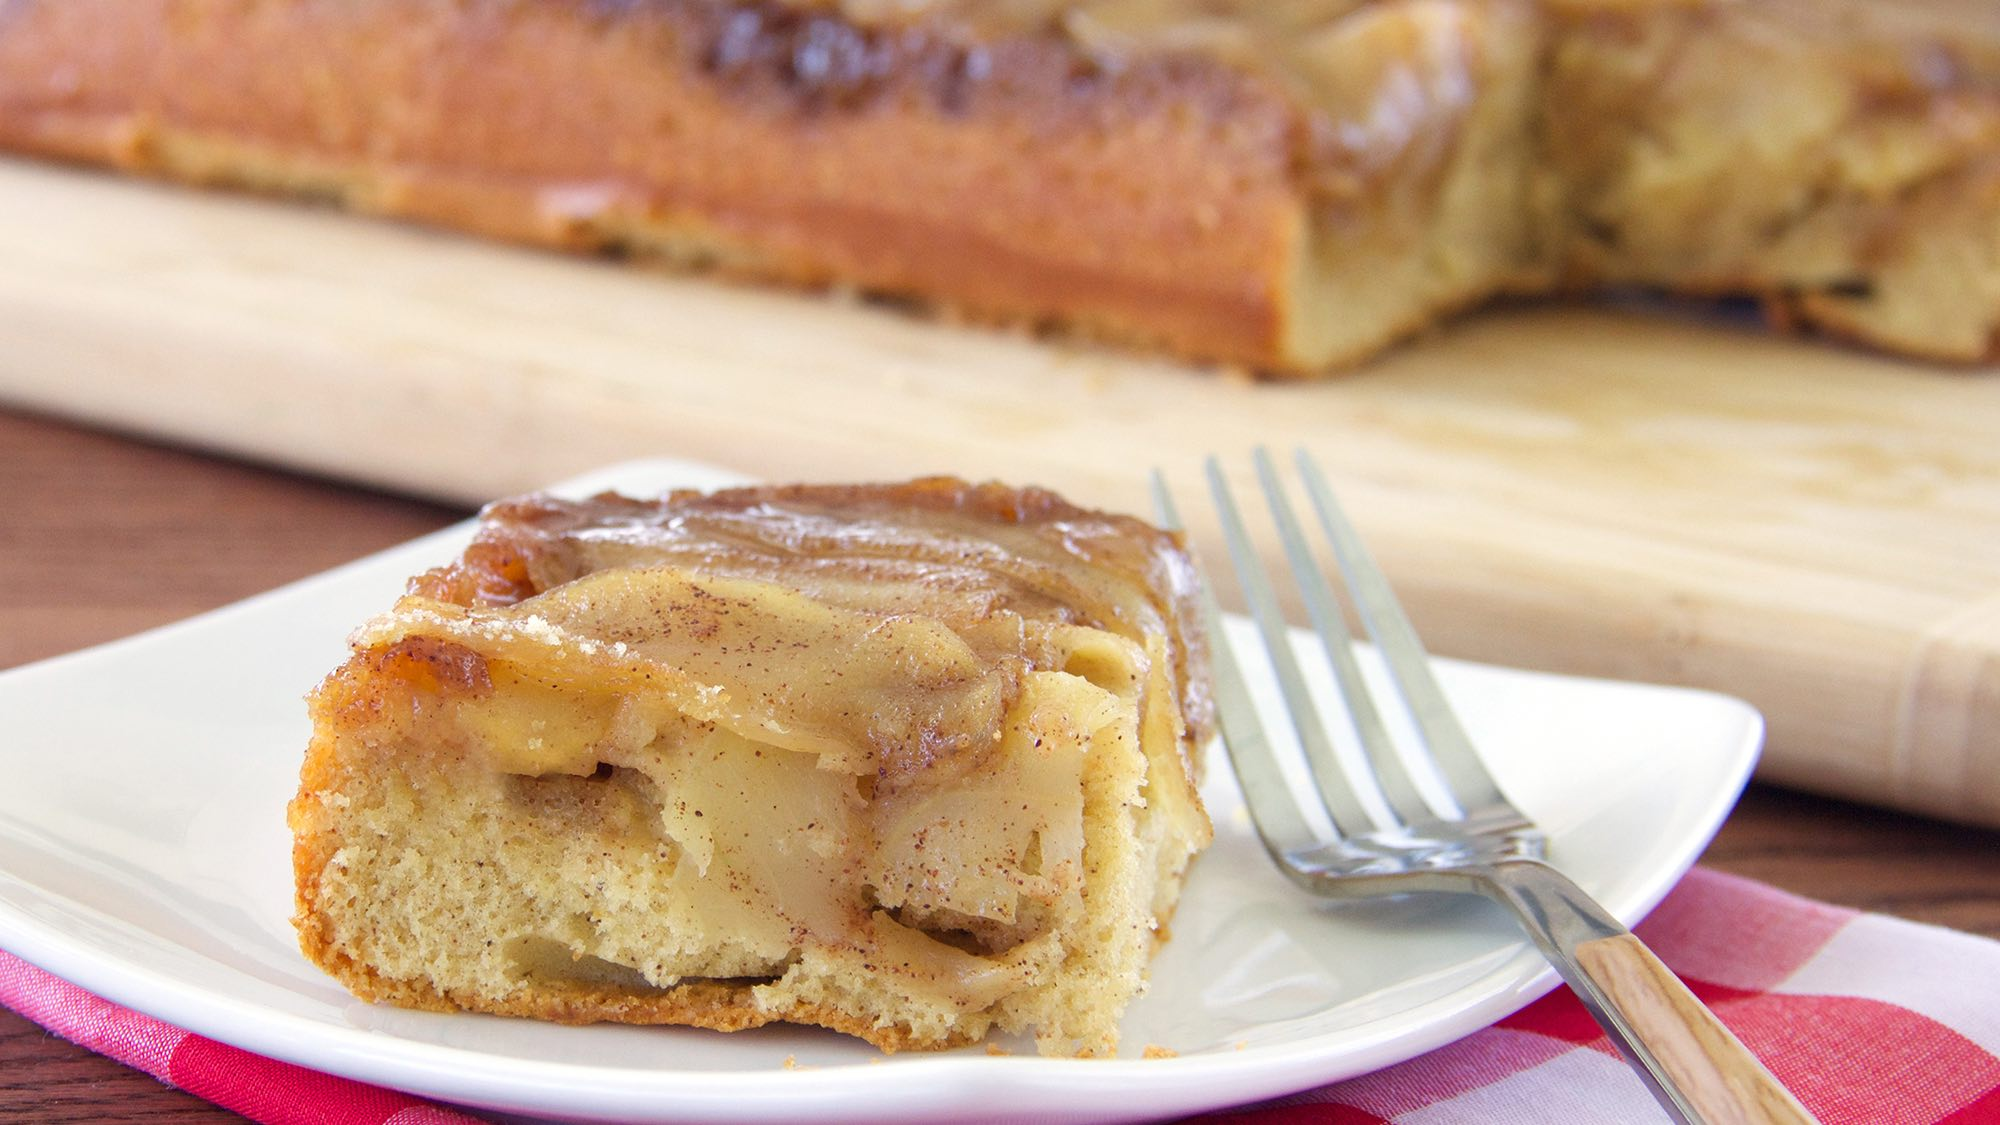 spiced-apple-upside-down-cake.jpg